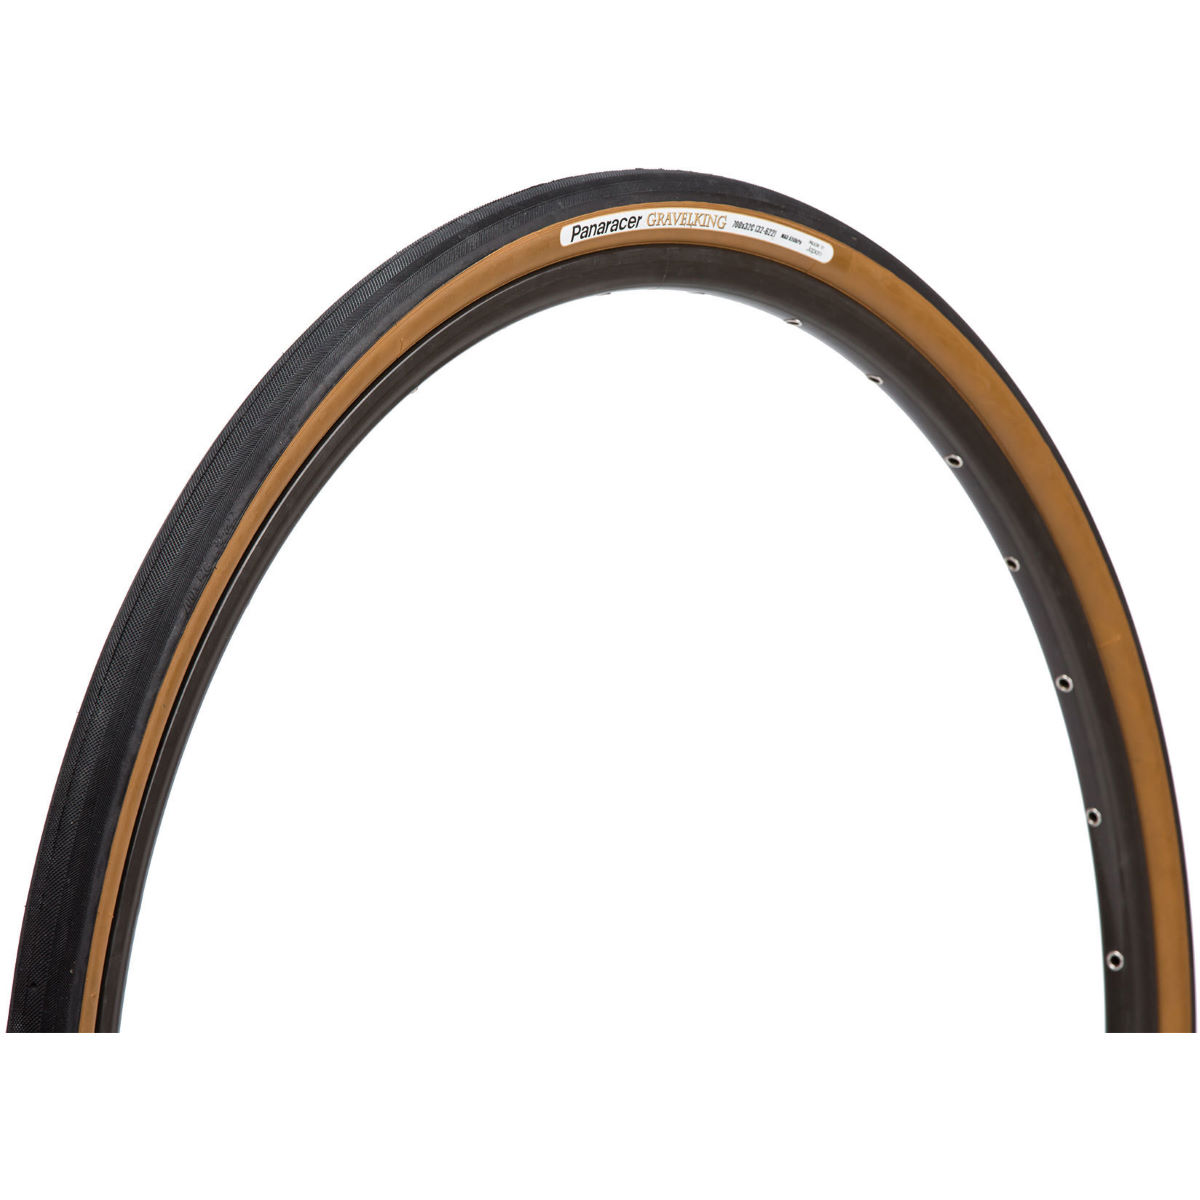 Pneu VTT Panaracer Gravel King (souple) - 1.75 27.5'' Black/Brown